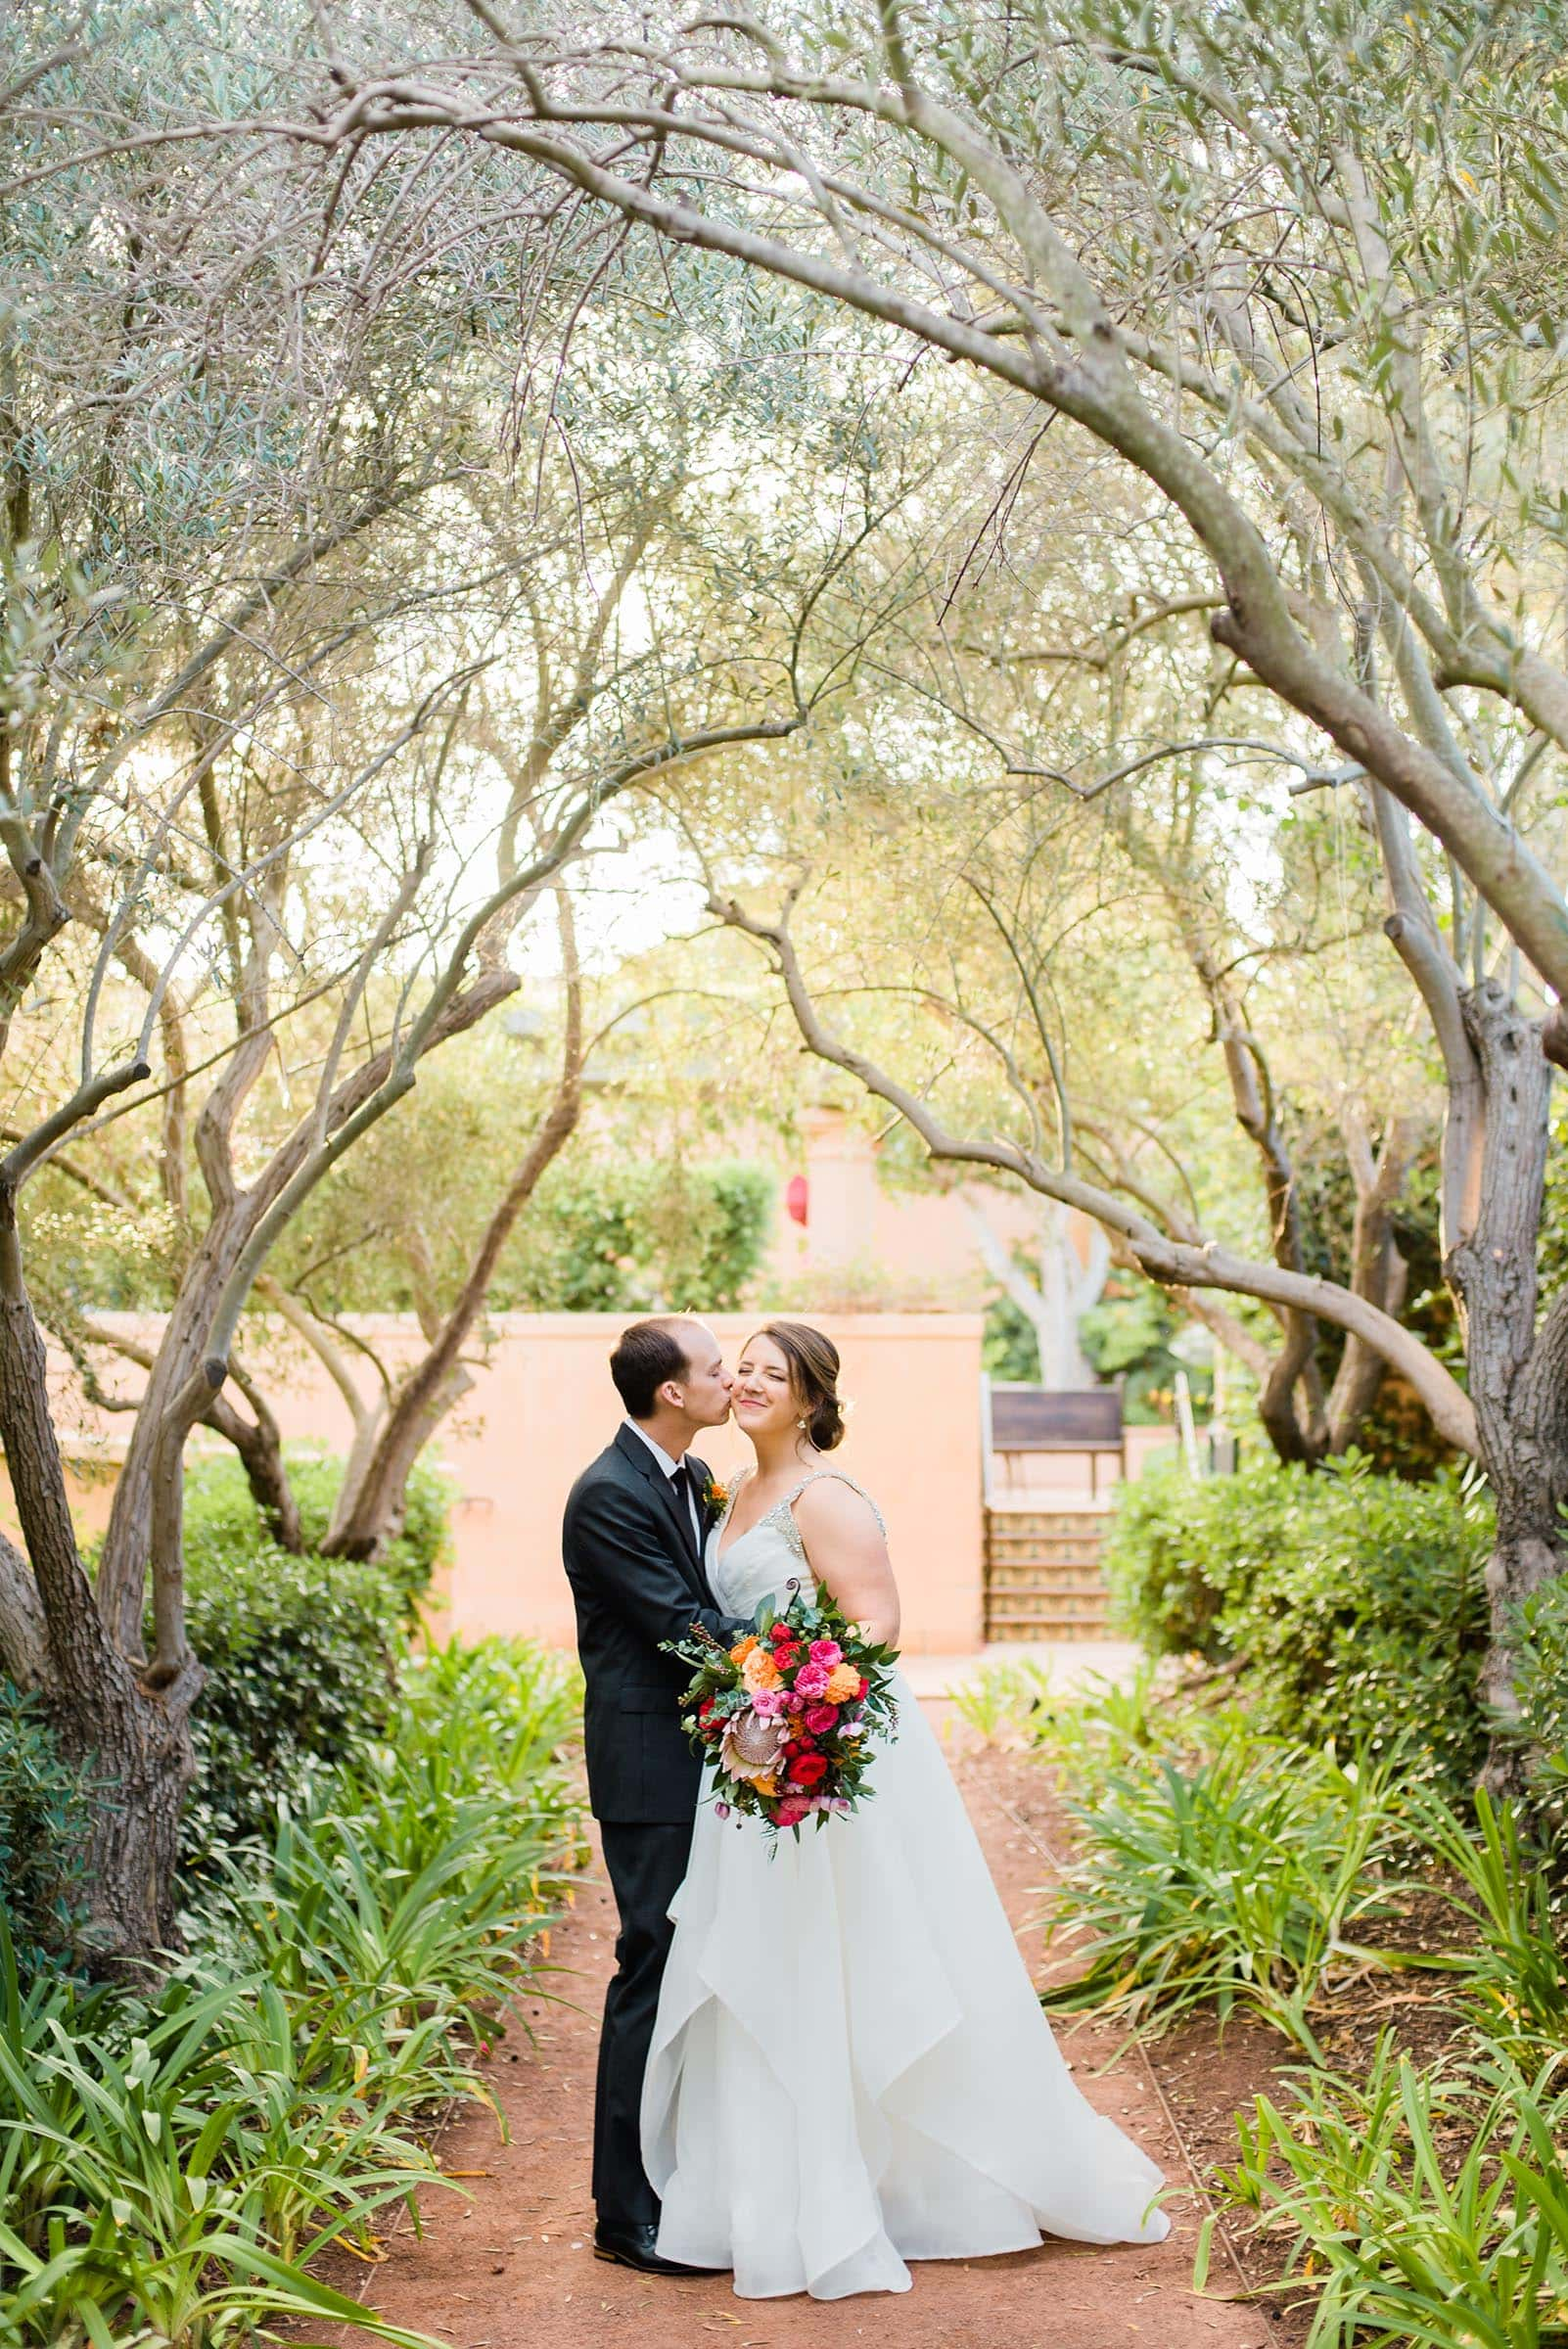 bride and groom in olive groves at Rancho Valencia wedding by Colorado Wedding Photographer Jennie Crate